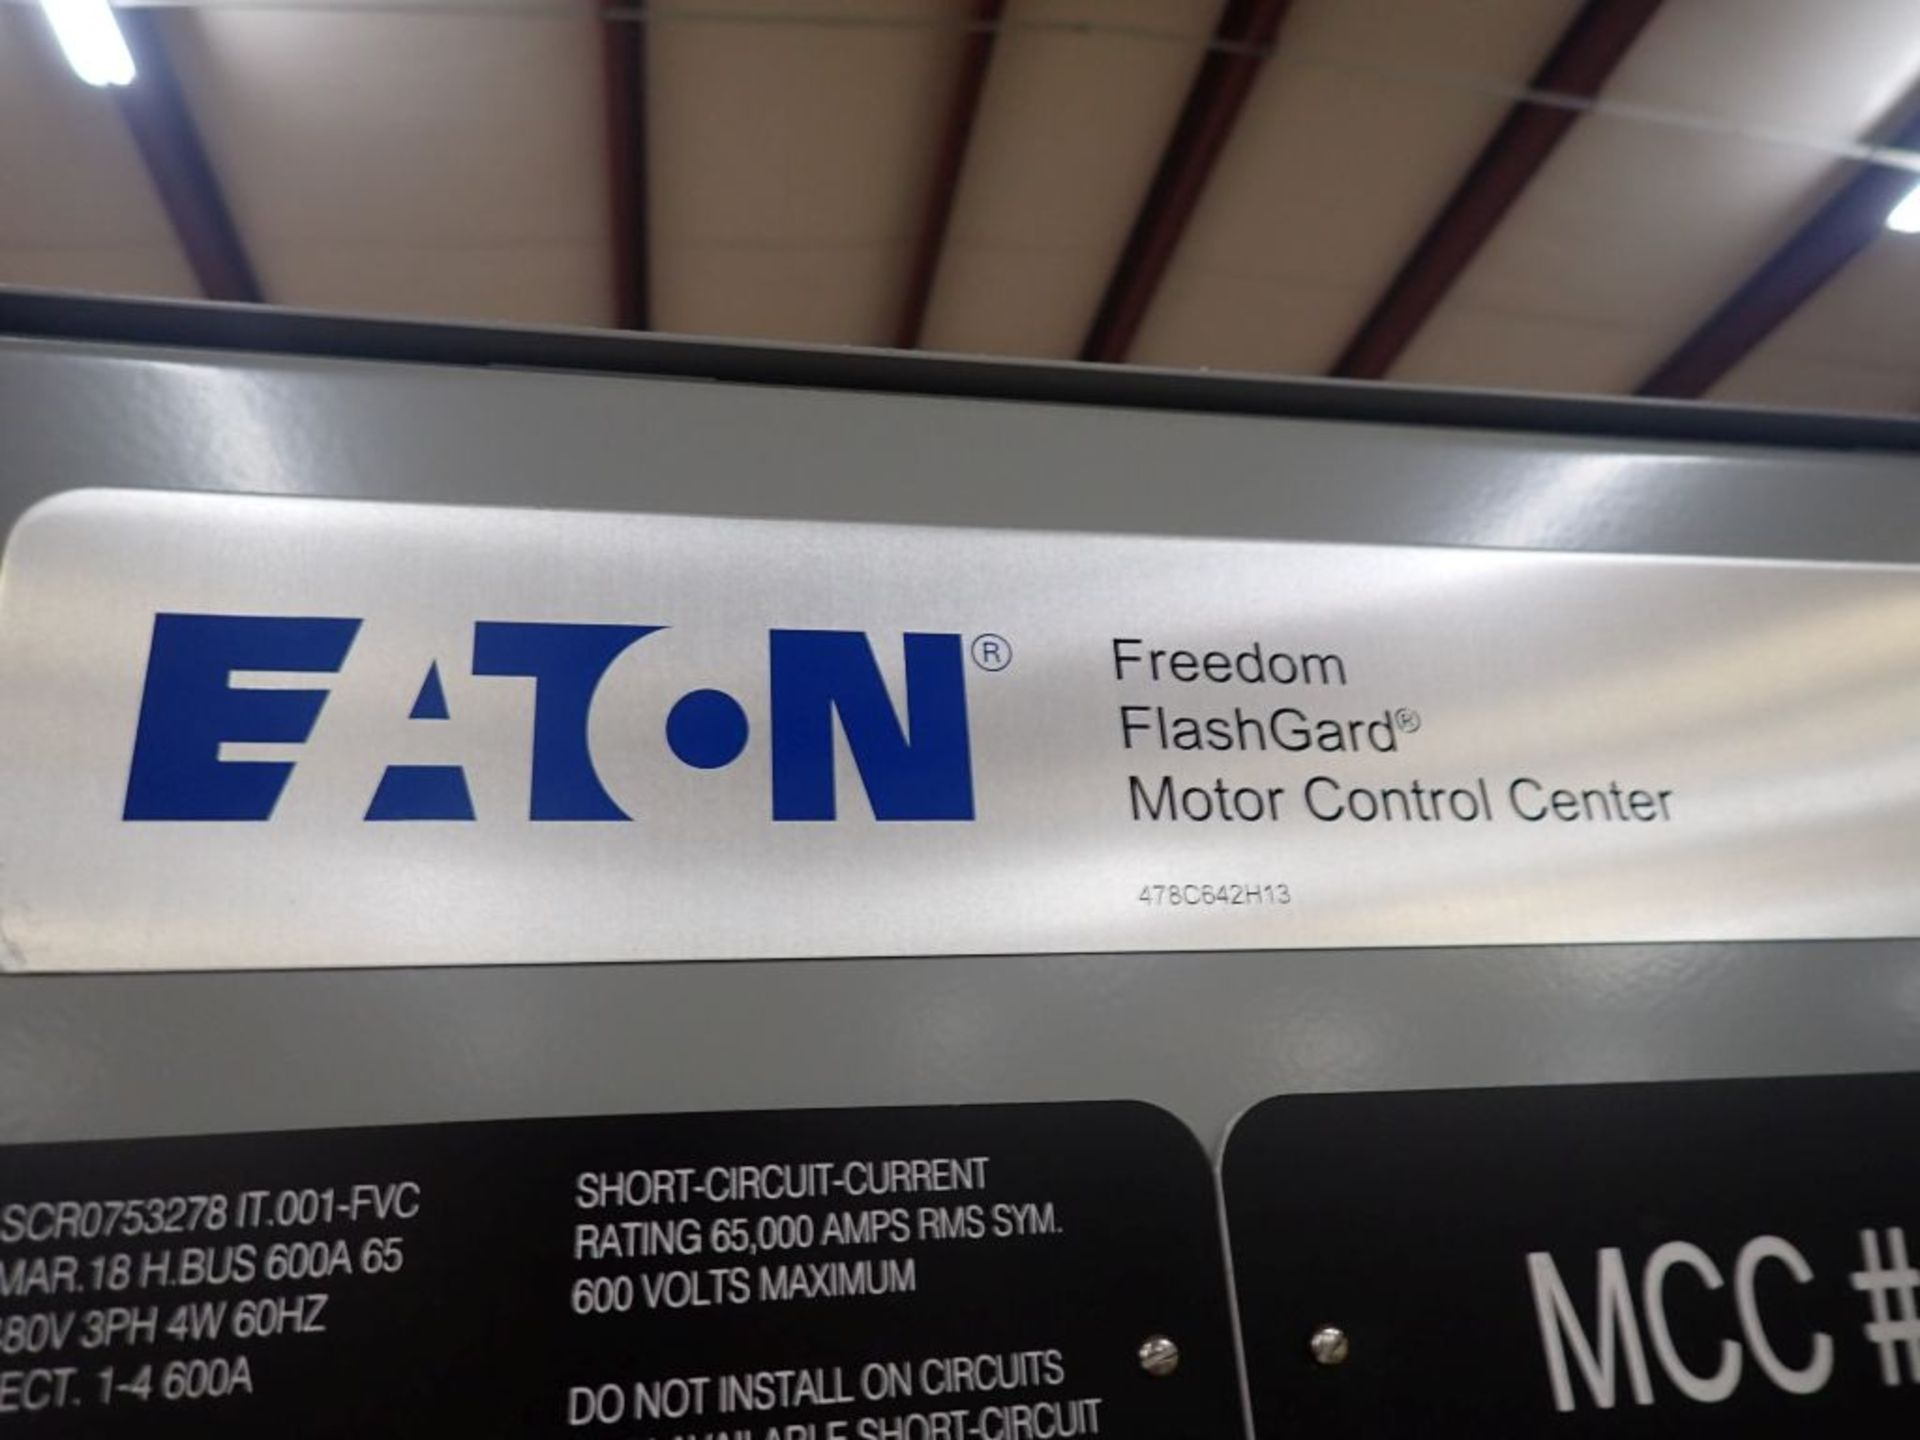 Eaton Freedom Flashgard Motor Control Center | SCR0753278, 480V; (1) INCB-250A, with 400A - Image 15 of 69